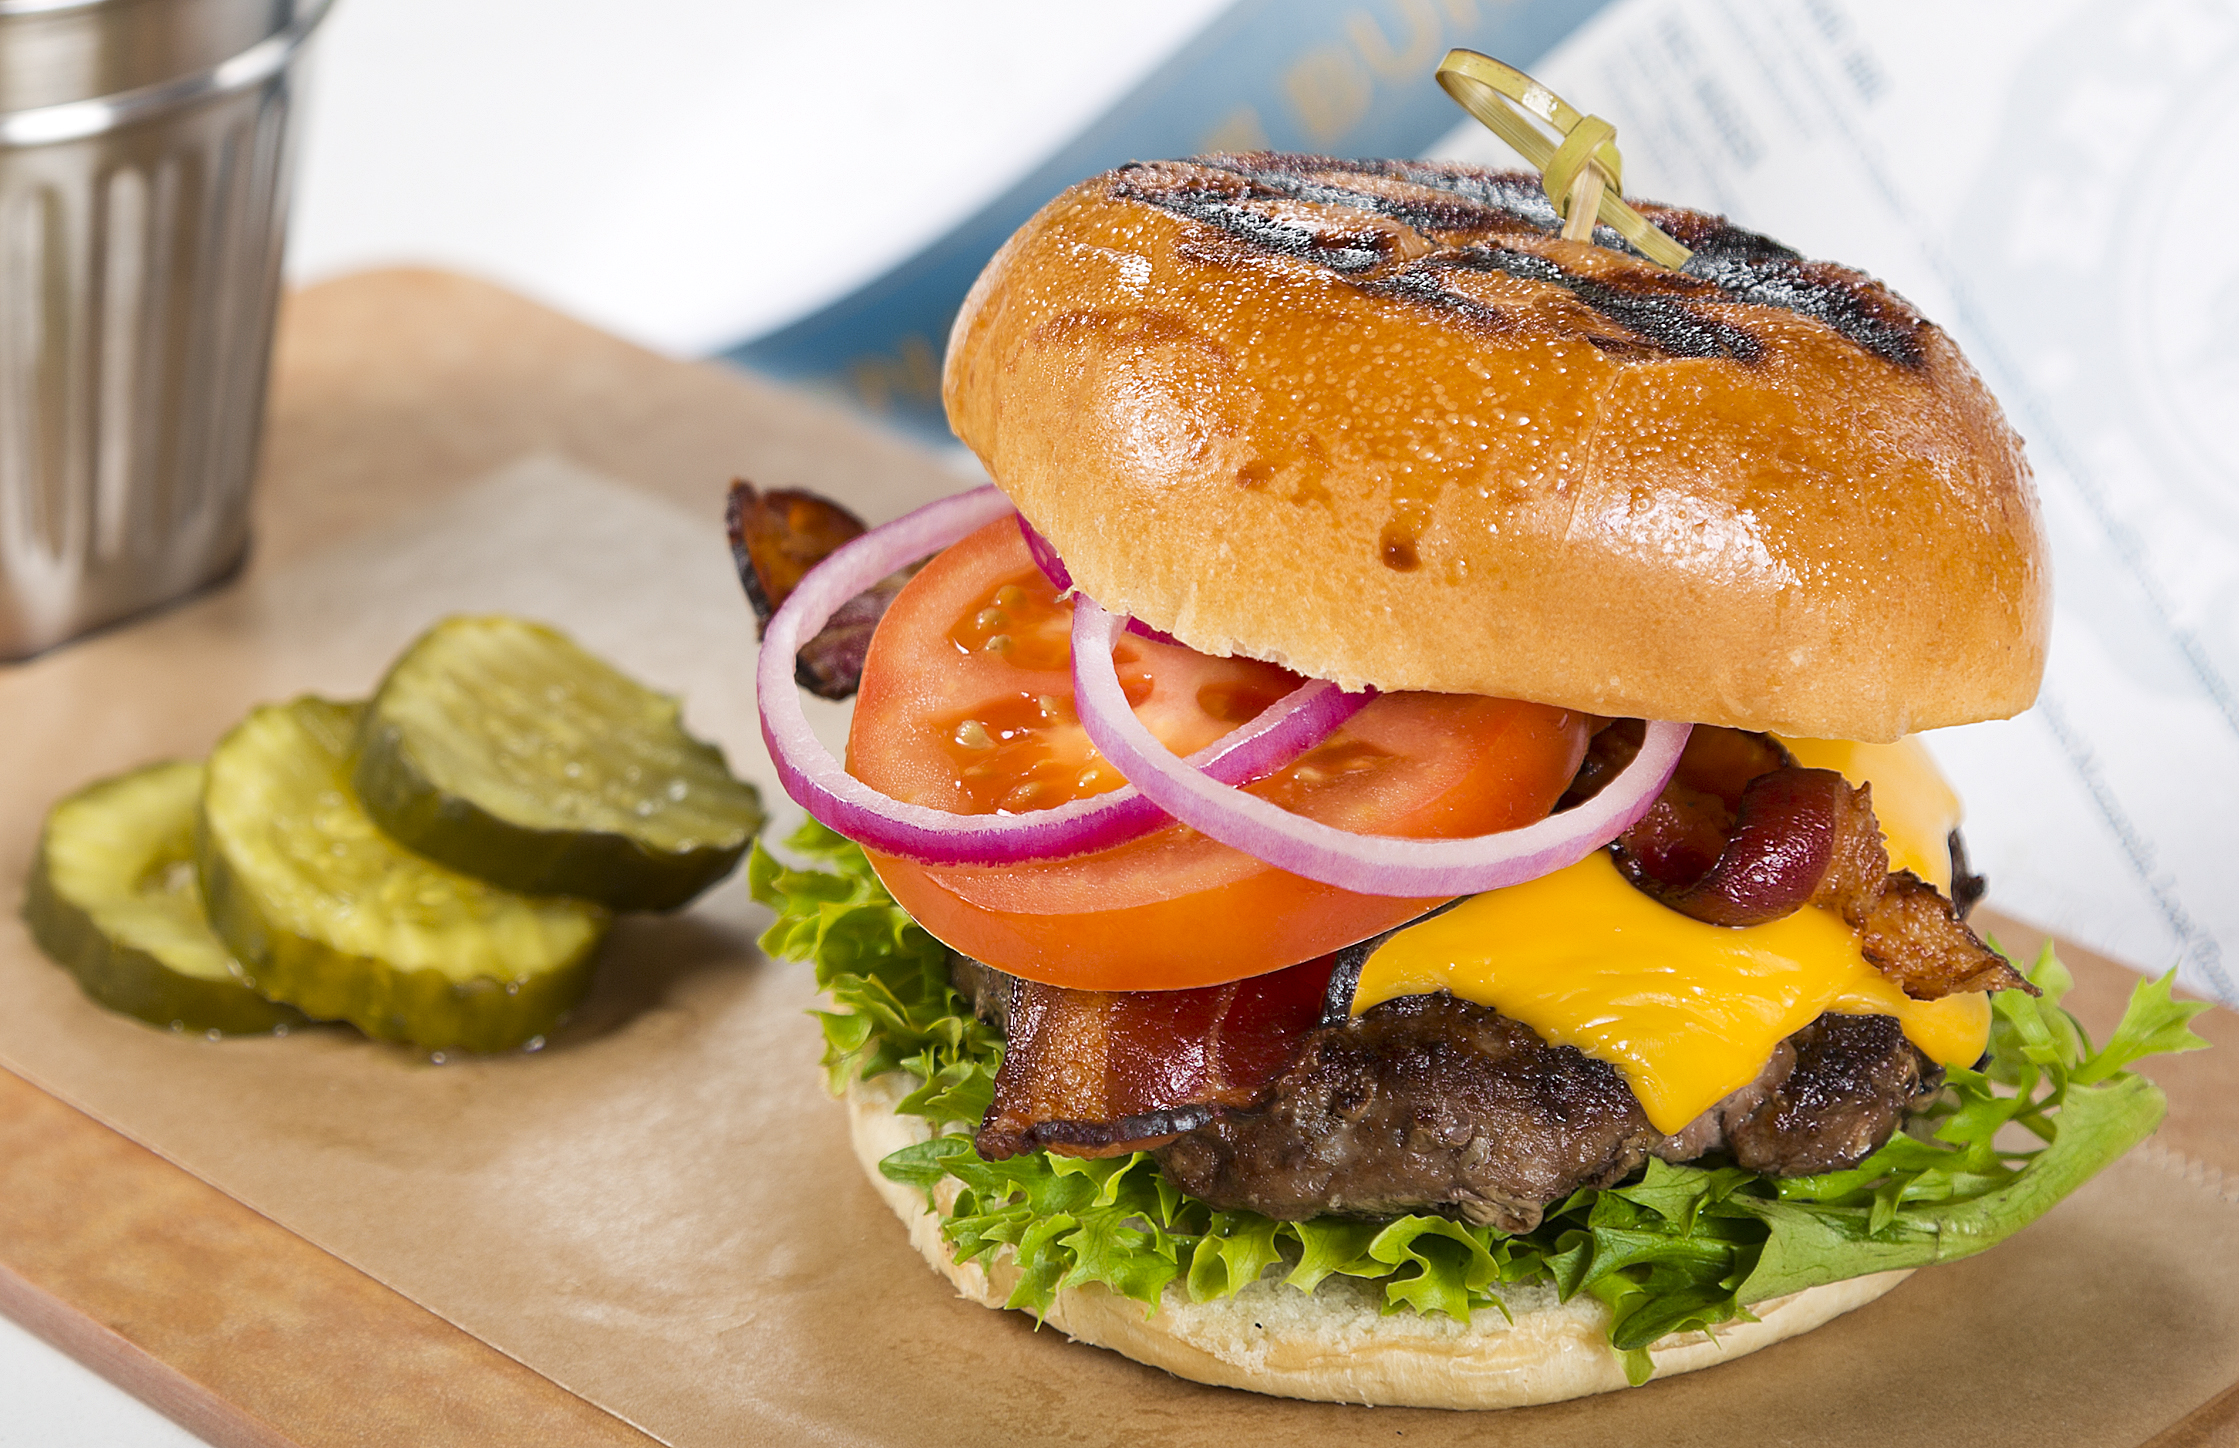 """BACKYARD BARBECUE   """"The All-American Classic"""" Signature Custom Blended Beef Grind, American Cheese, Garden Greens, Florida Tomato, Onion, Smoked Bacon, Barbecue Sauce, Toasted Brioche"""